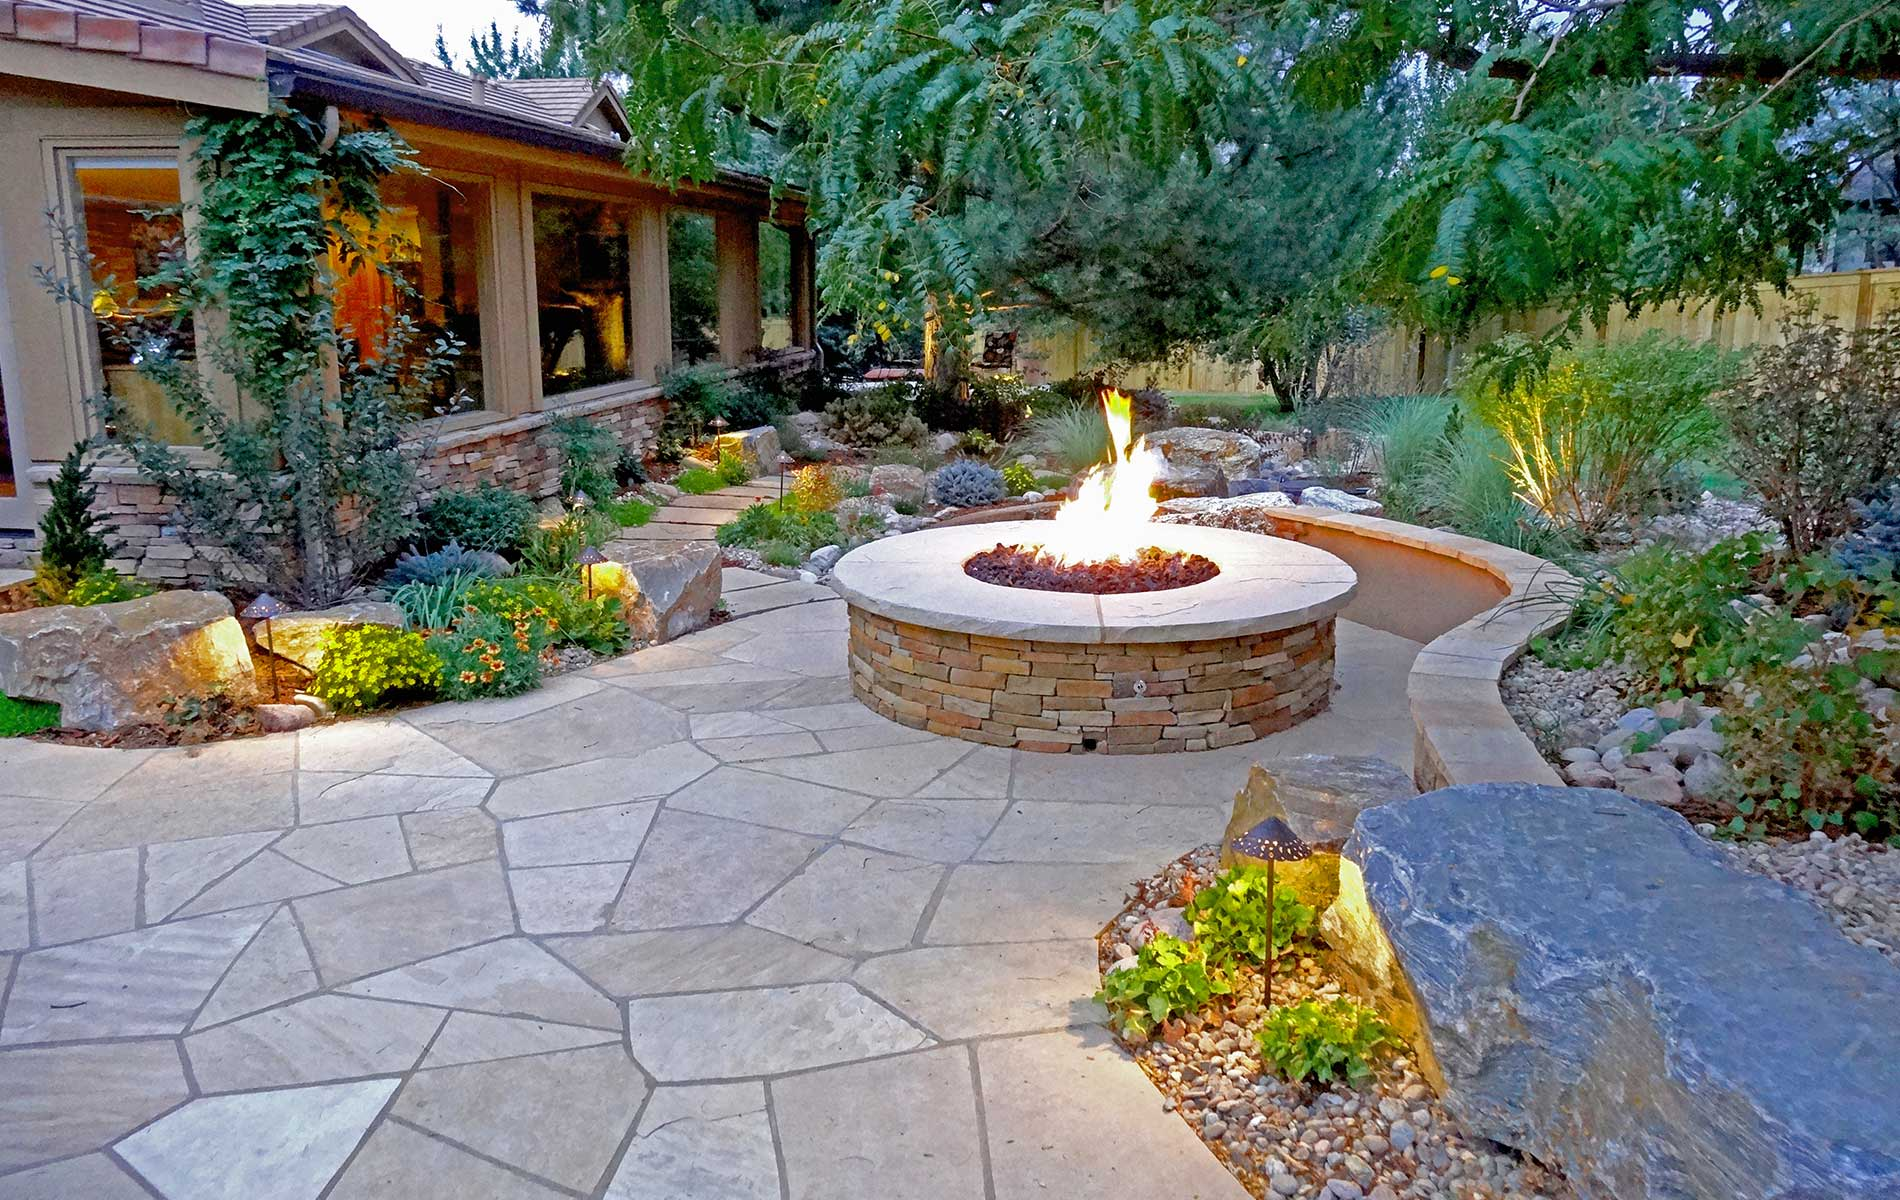 Best Stone Patio Ideas, Designs and Installation Tips ... on Rock Patio Designs  id=88028